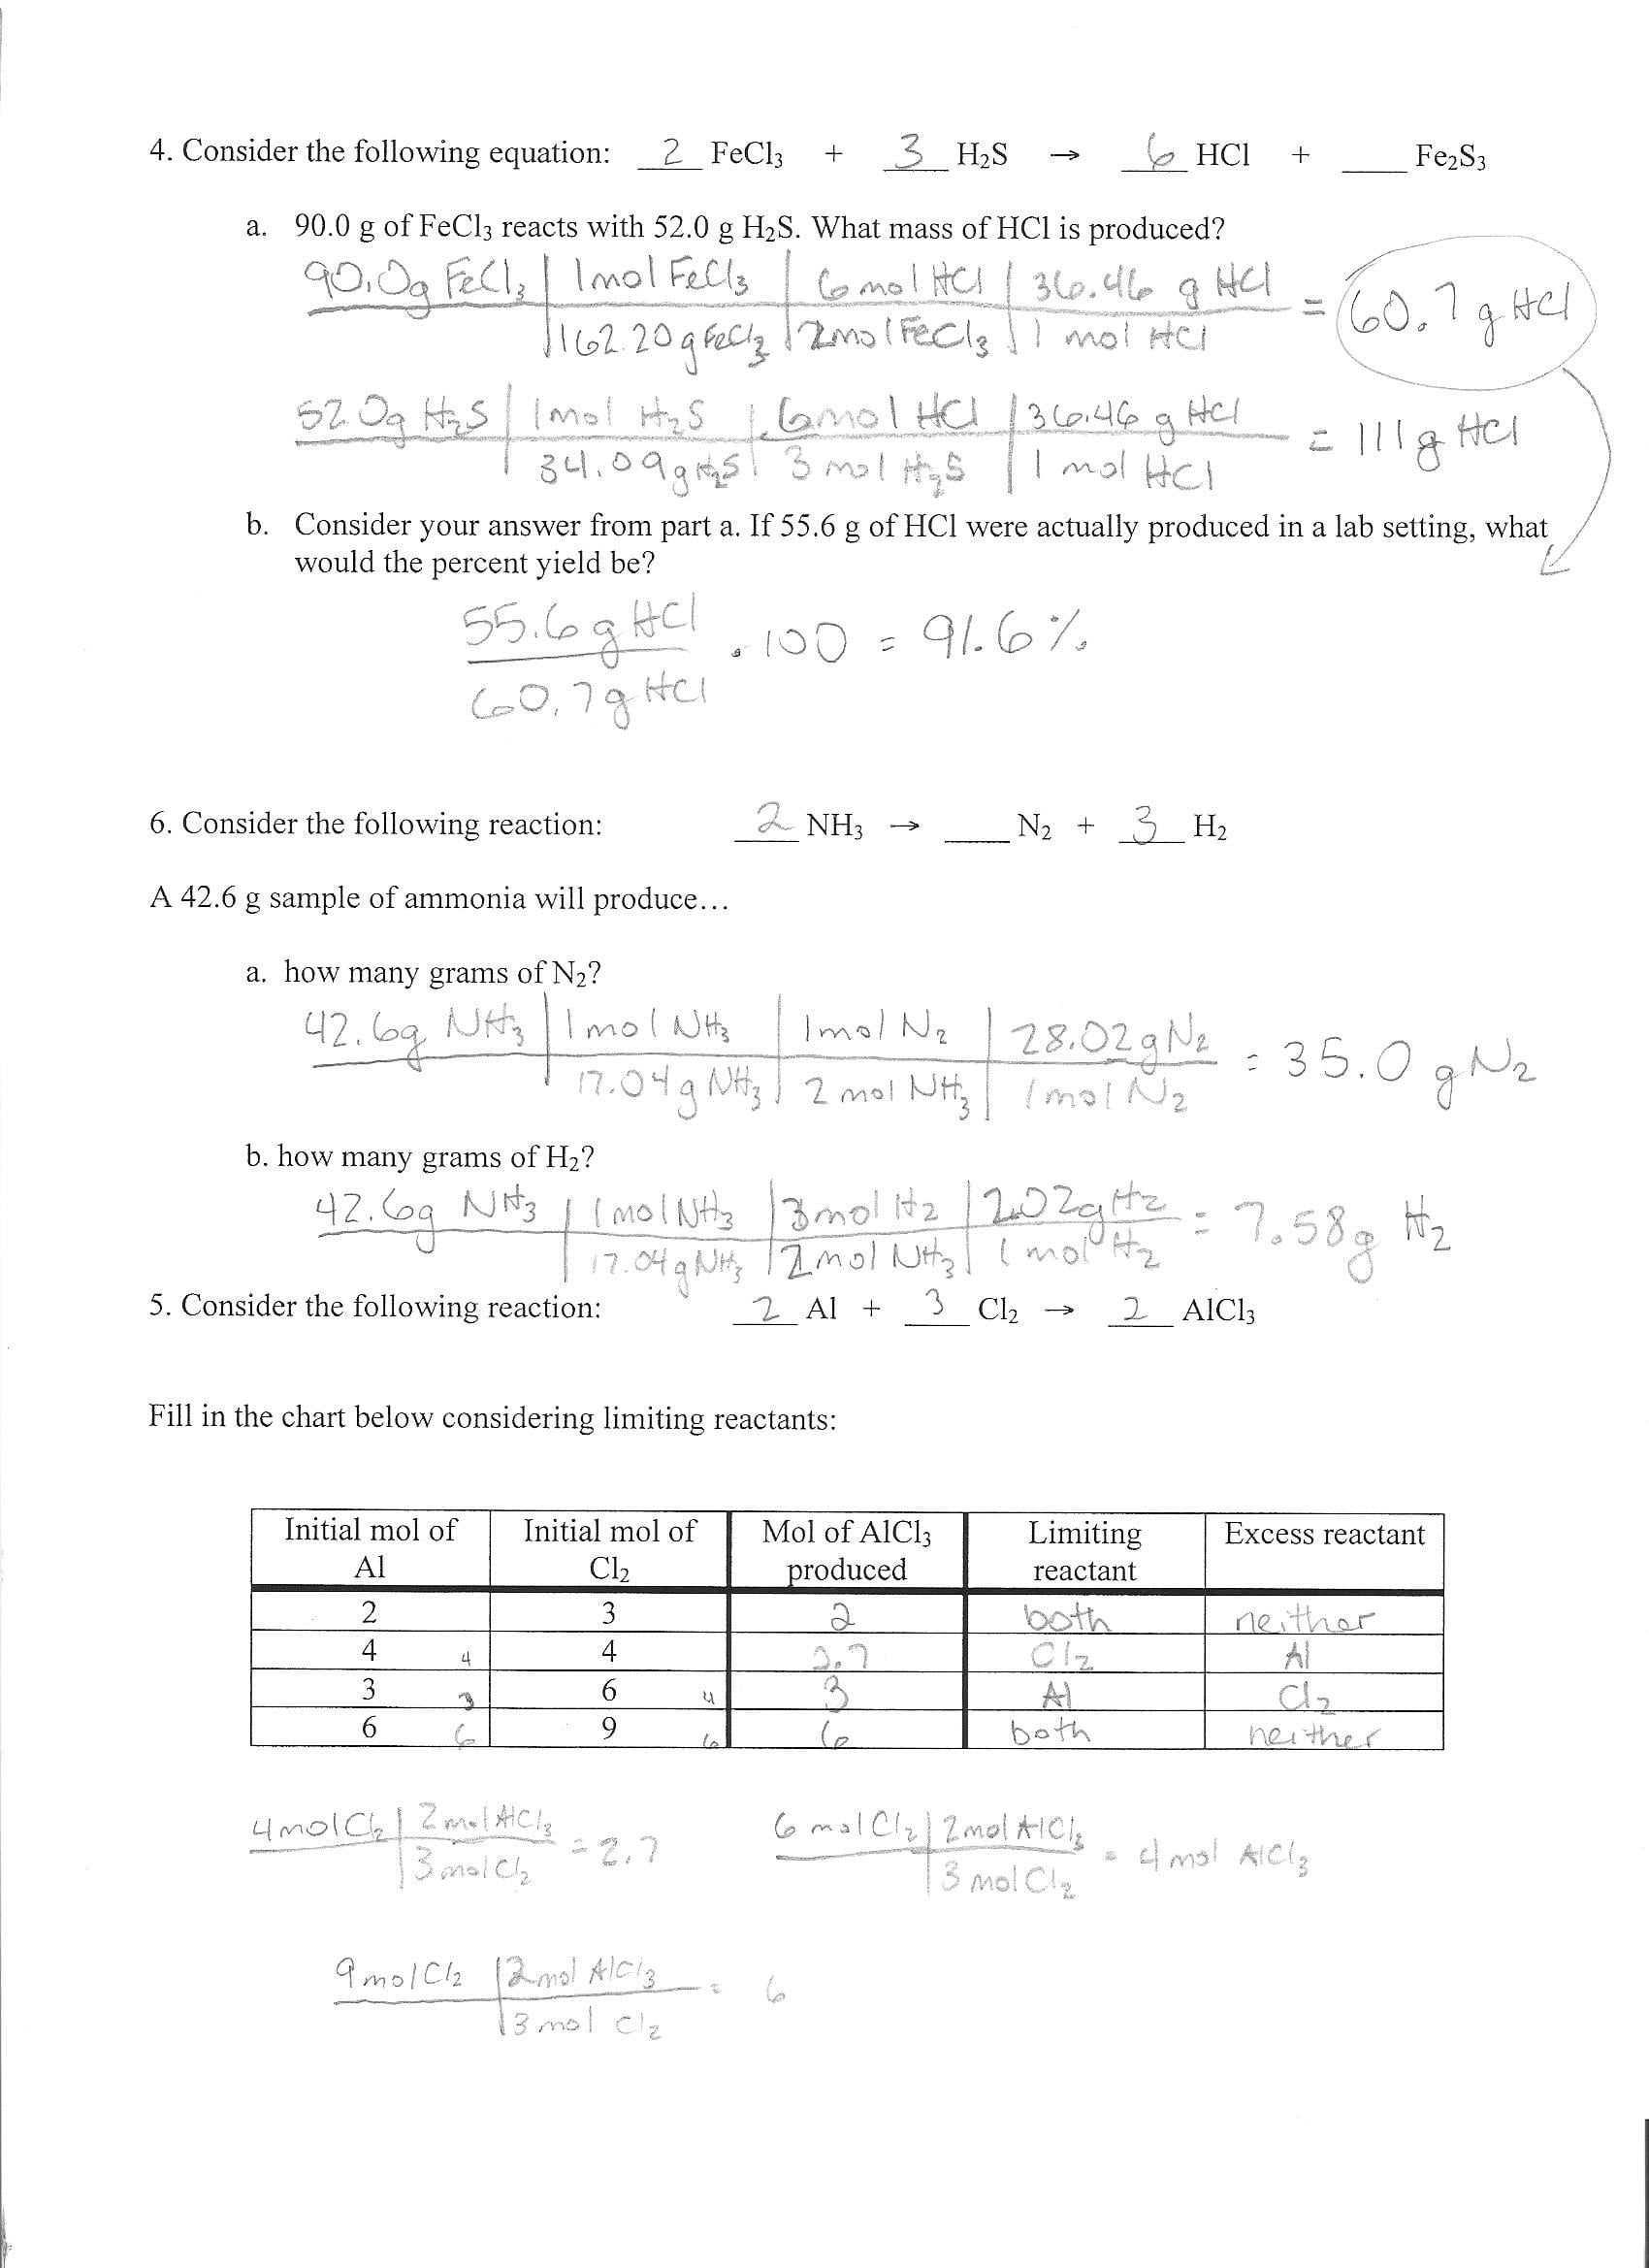 Djhs Chem Unit 8 In Mole Ratio Worksheet